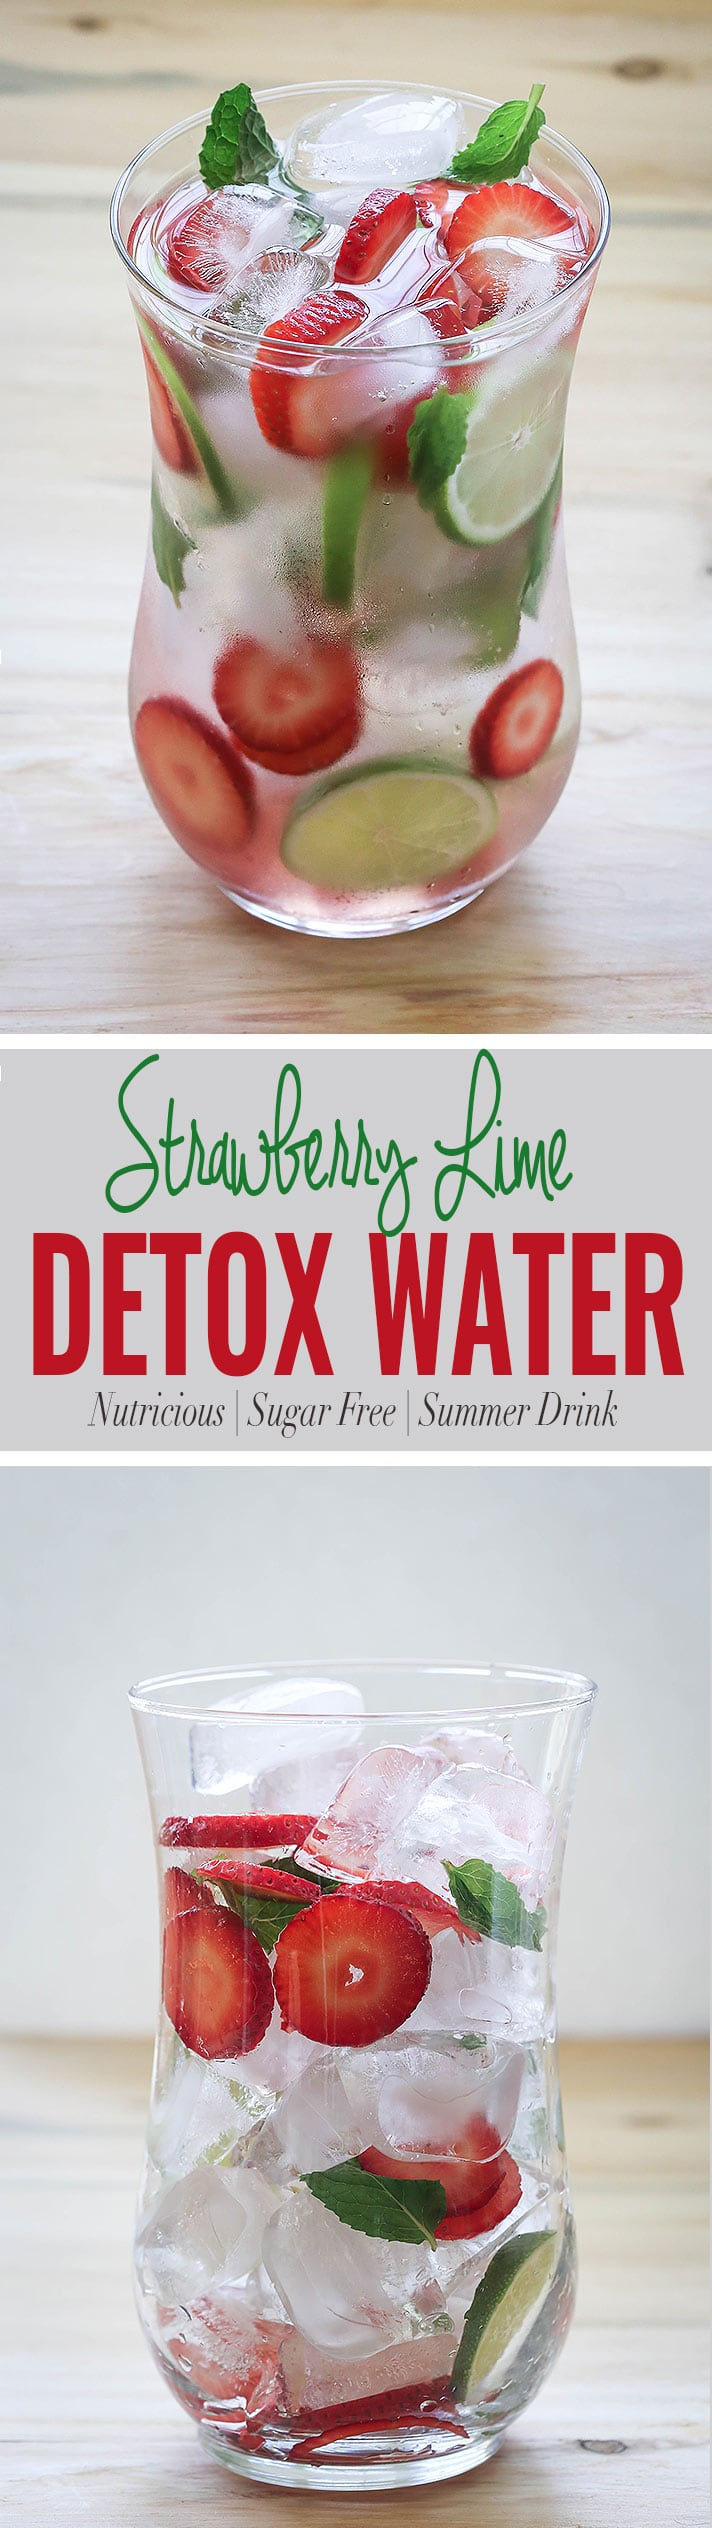 Hydrate yourself with strawberry detox water.  Use fresh strawberries, lime and mint to prepare this fruit infused water.